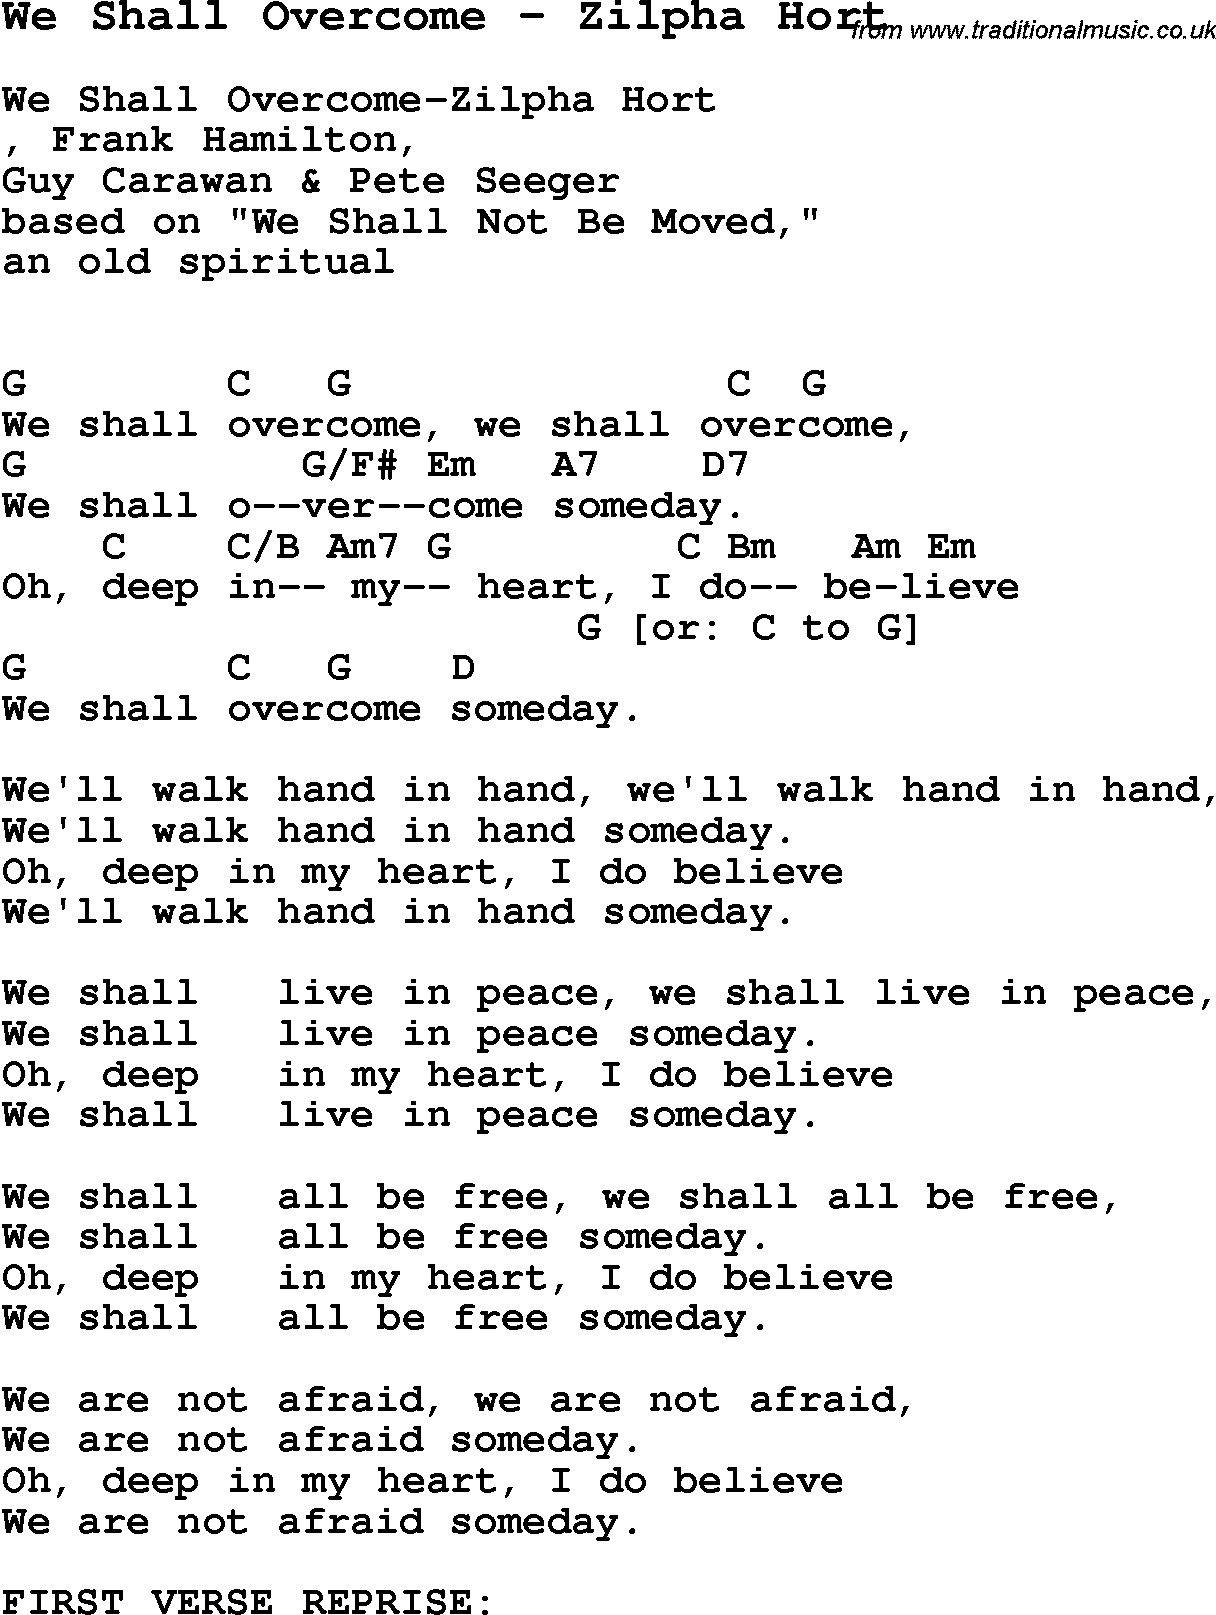 Song we shall overcome by zilpha hort song lyric for vocal song we shall overcome by zilpha hort with lyrics for vocal performance and accompaniment chords hexwebz Image collections